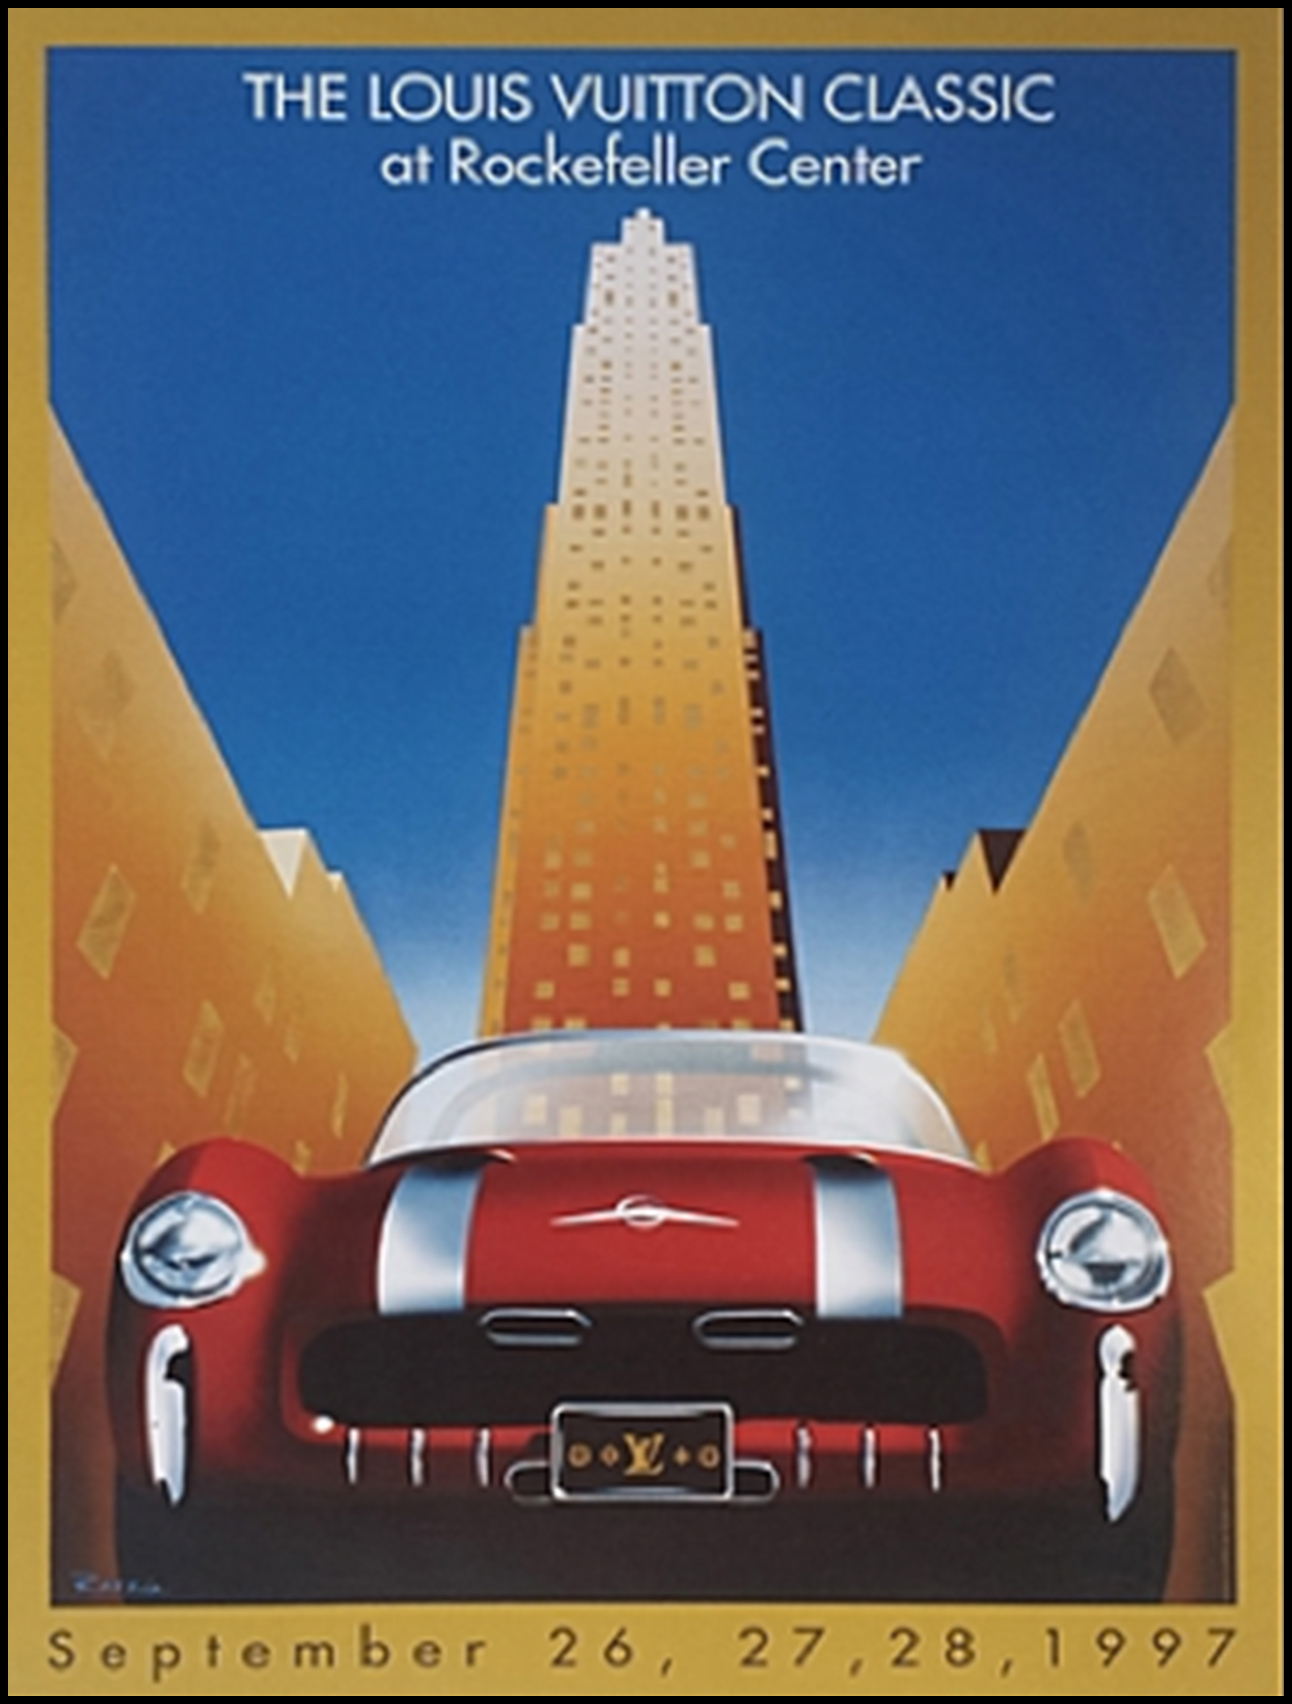 Poster of The Louis Vuitton Classic featuring the 1954 Pontiac Bonneville Special from the Bortz Auto Collection.